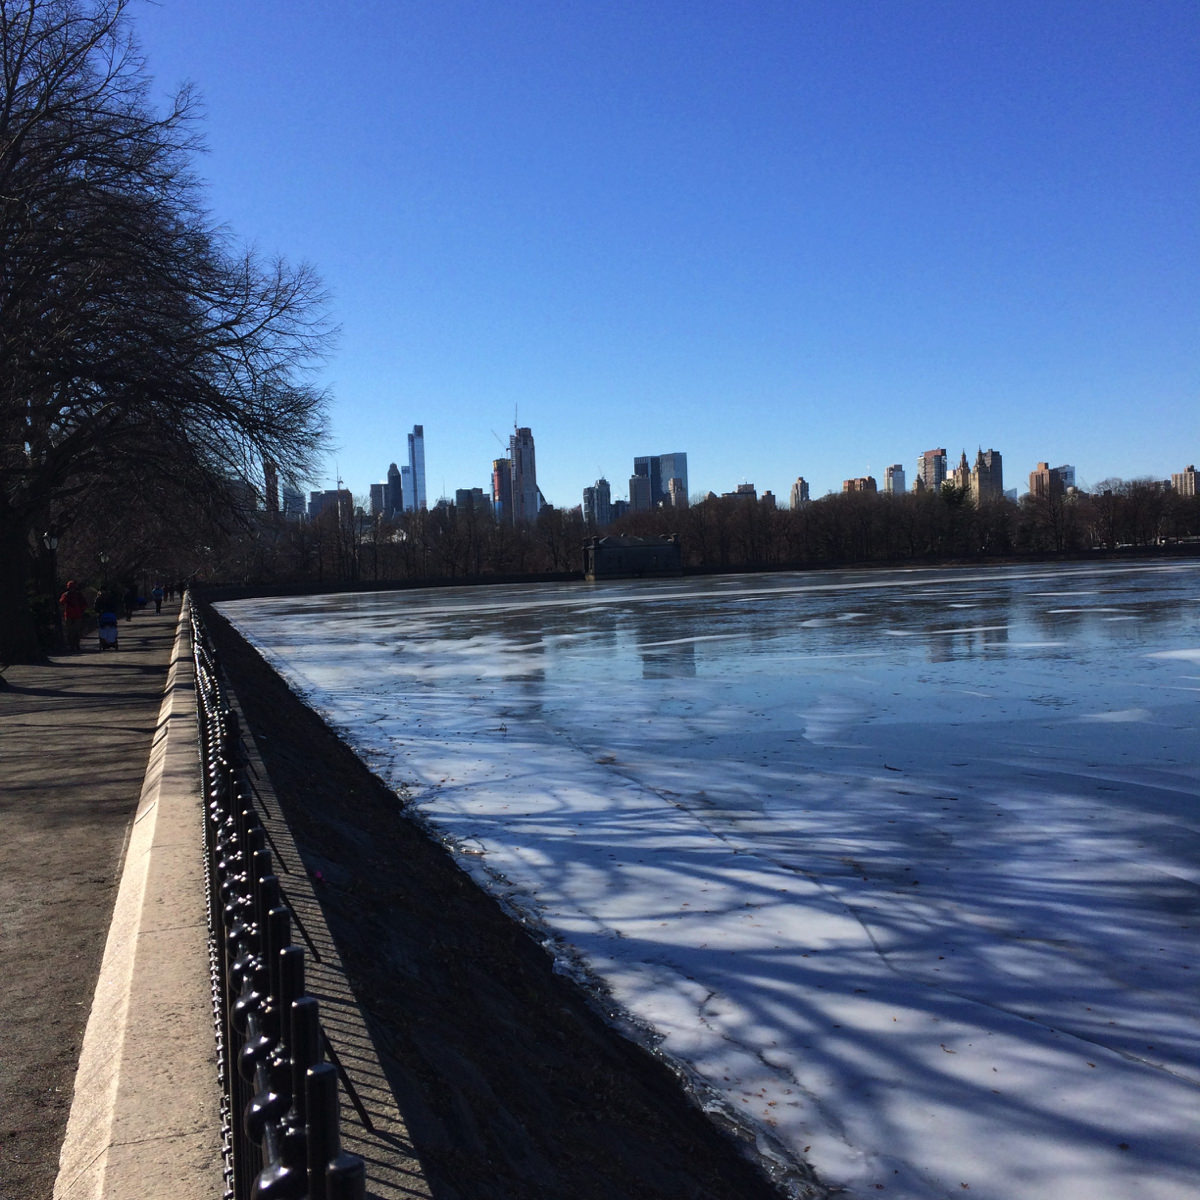 View south of the partially frozen Jacqueline Kennedy Onassis Reservoir in Central Park.